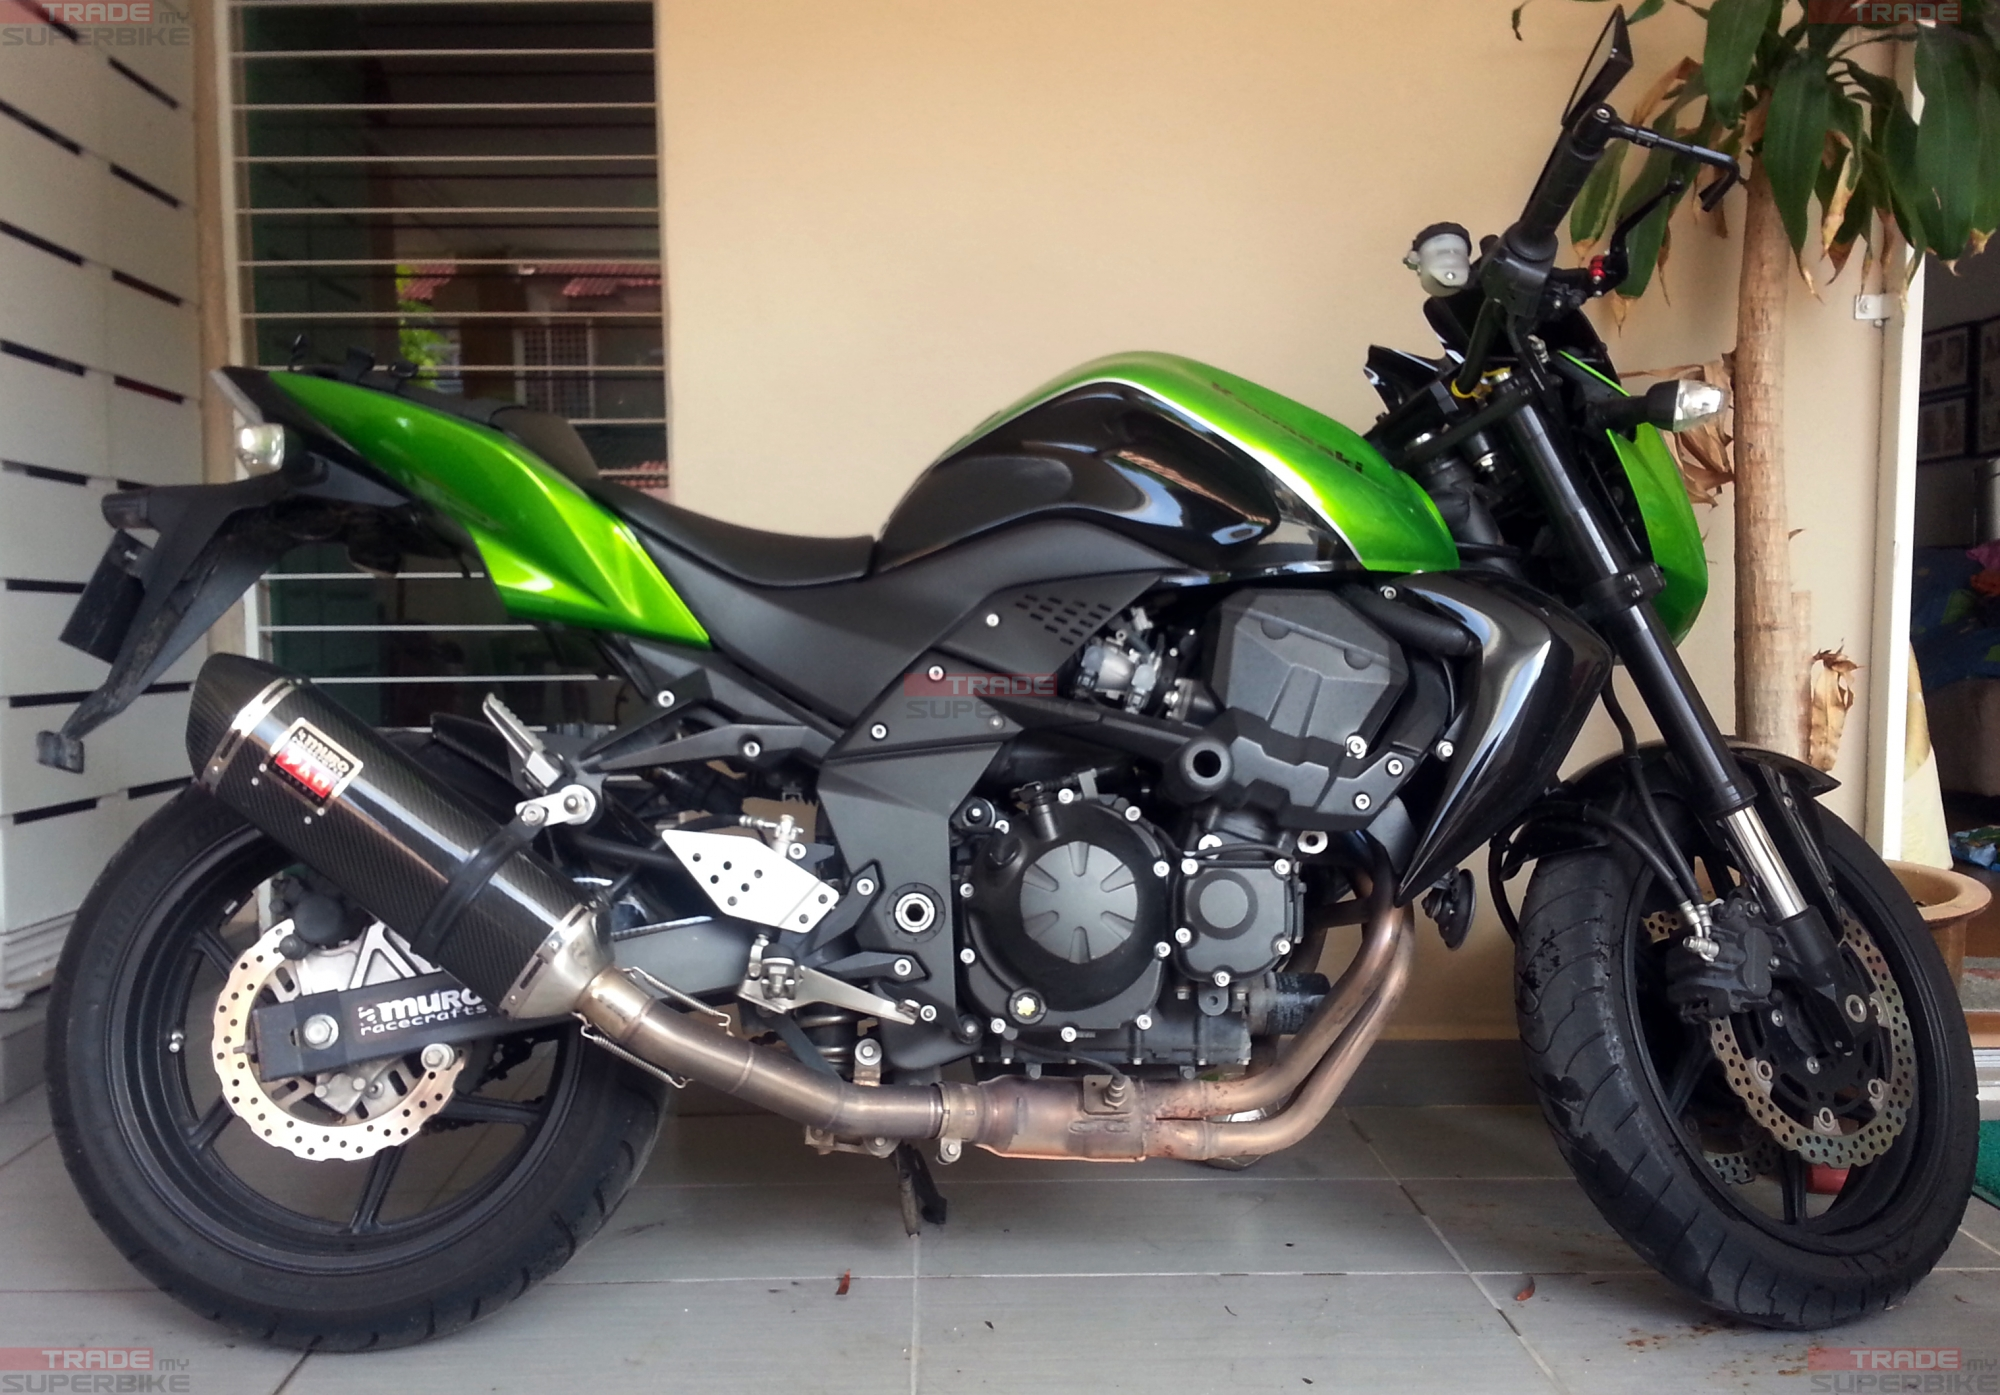 kawasaki z750 cbu japan specs 2009 well maintained. Black Bedroom Furniture Sets. Home Design Ideas